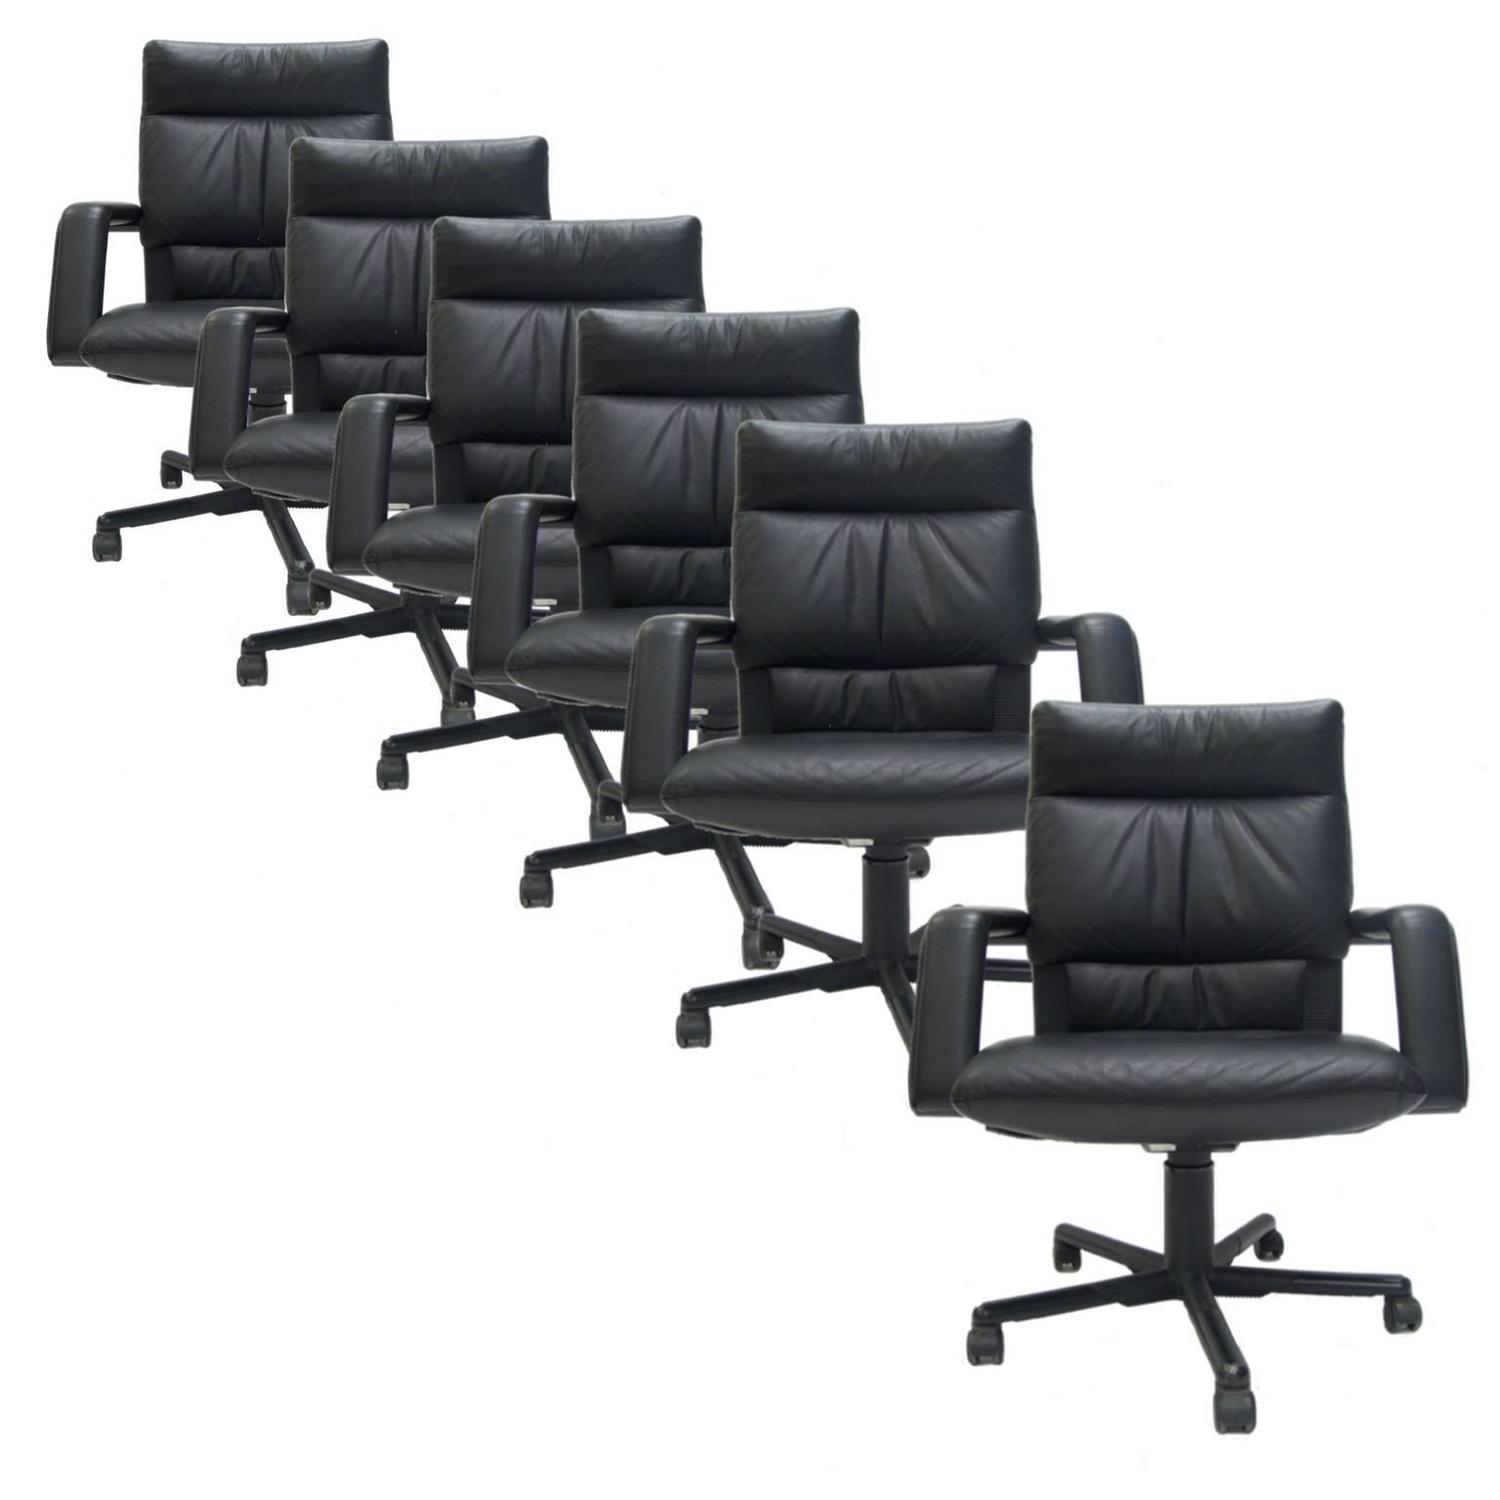 Black Chairs For Sale Mario Bellini For Vitra Black Leather Swivel And Tilt